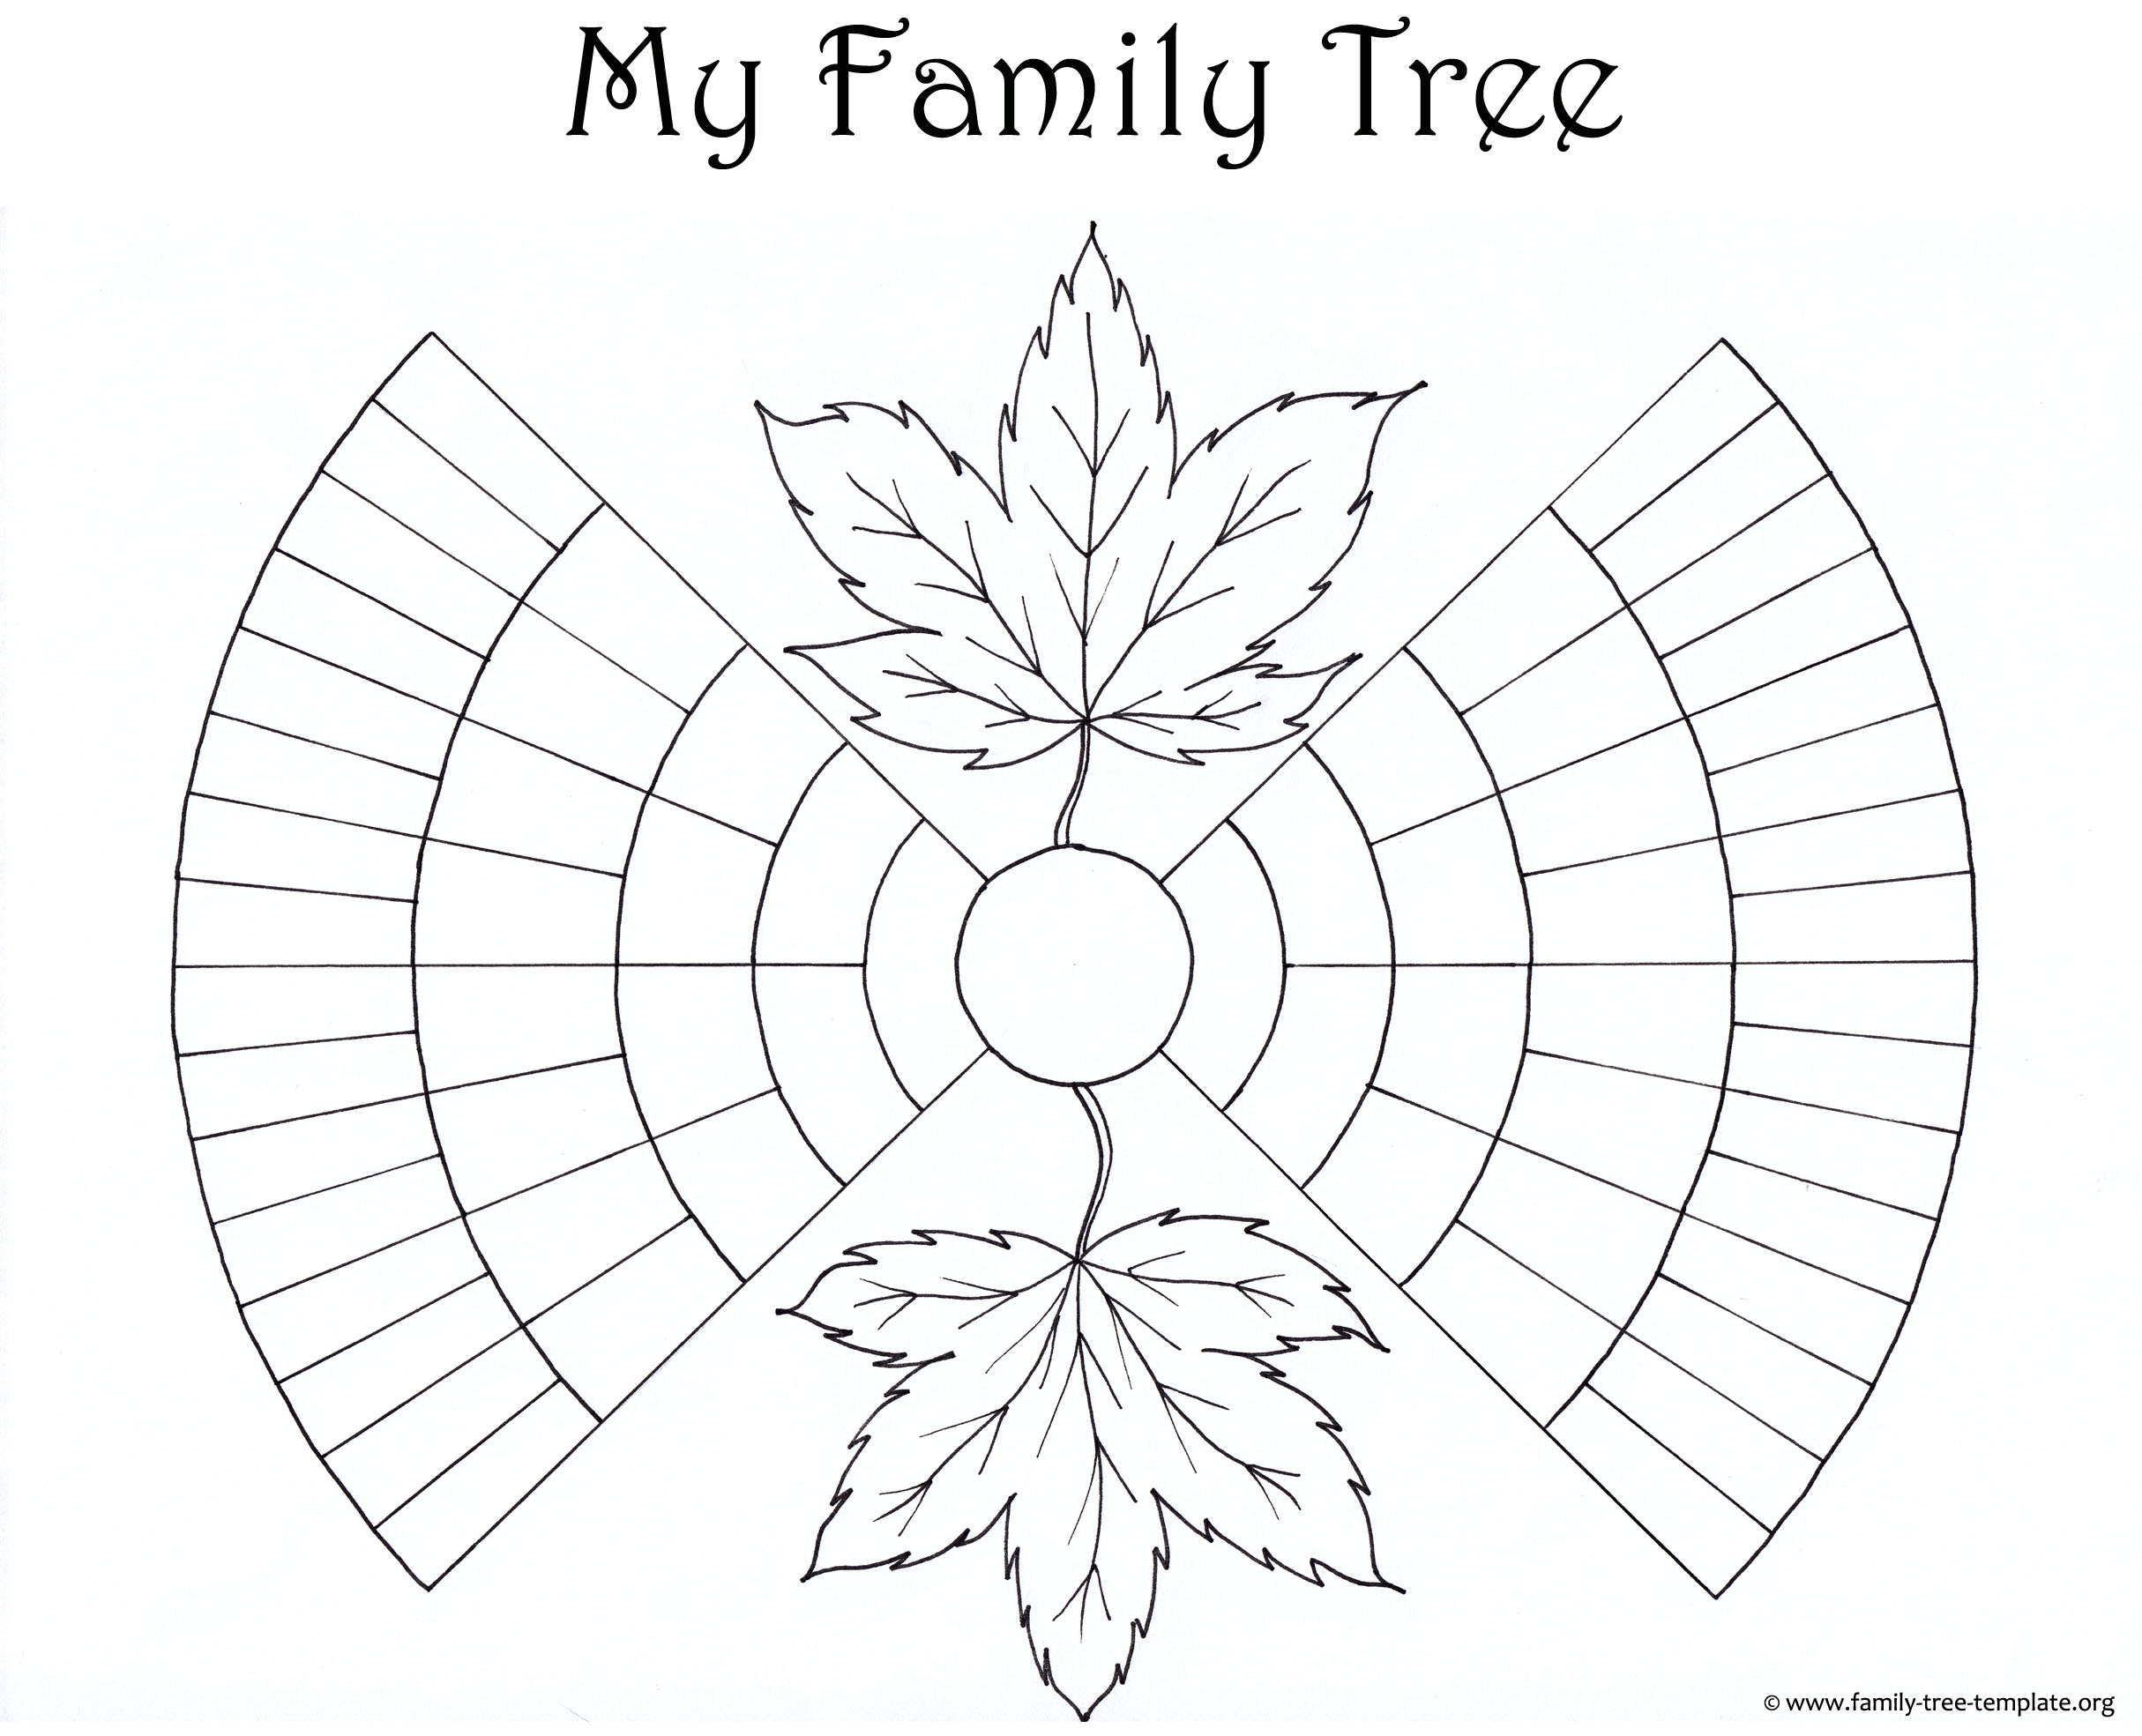 Printable ancestor chart for kids to color.